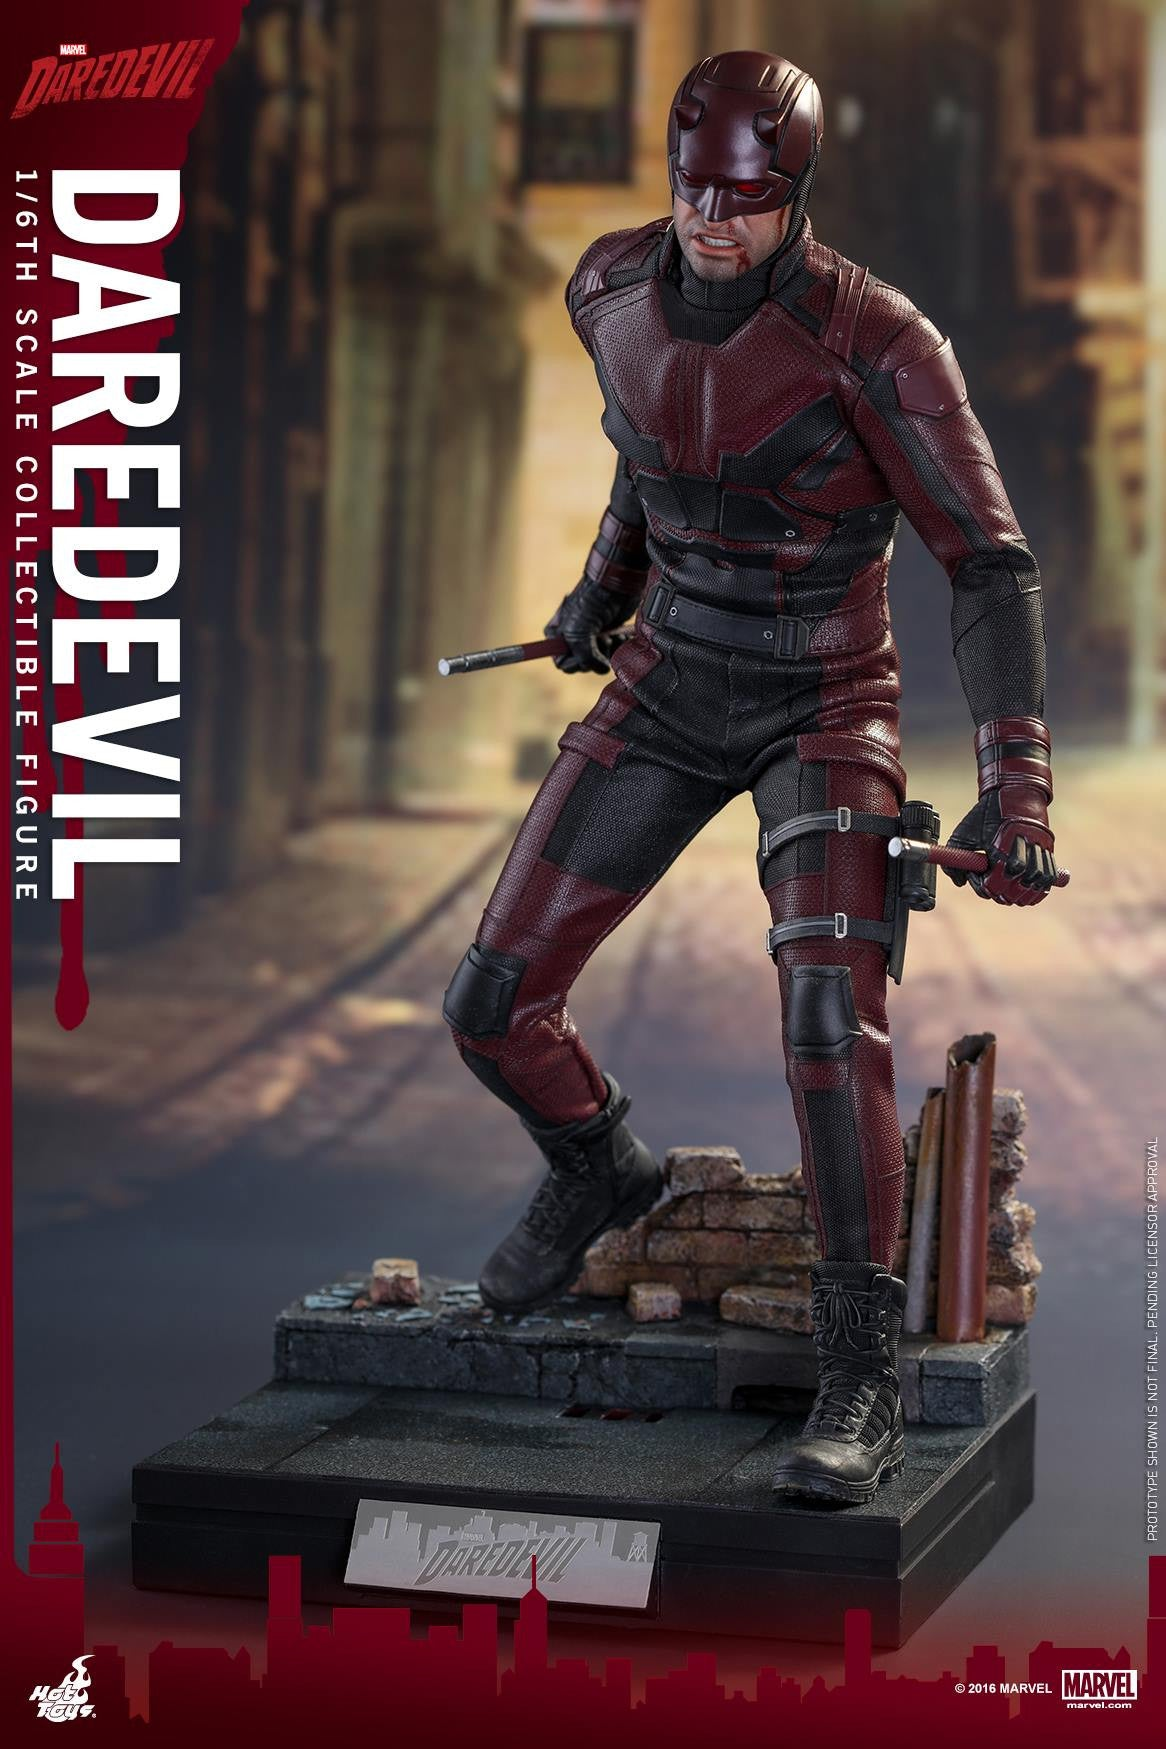 Hot Toys - TMS003 - Marvel's Daredevil - Daredevil - Marvelous Toys - 10